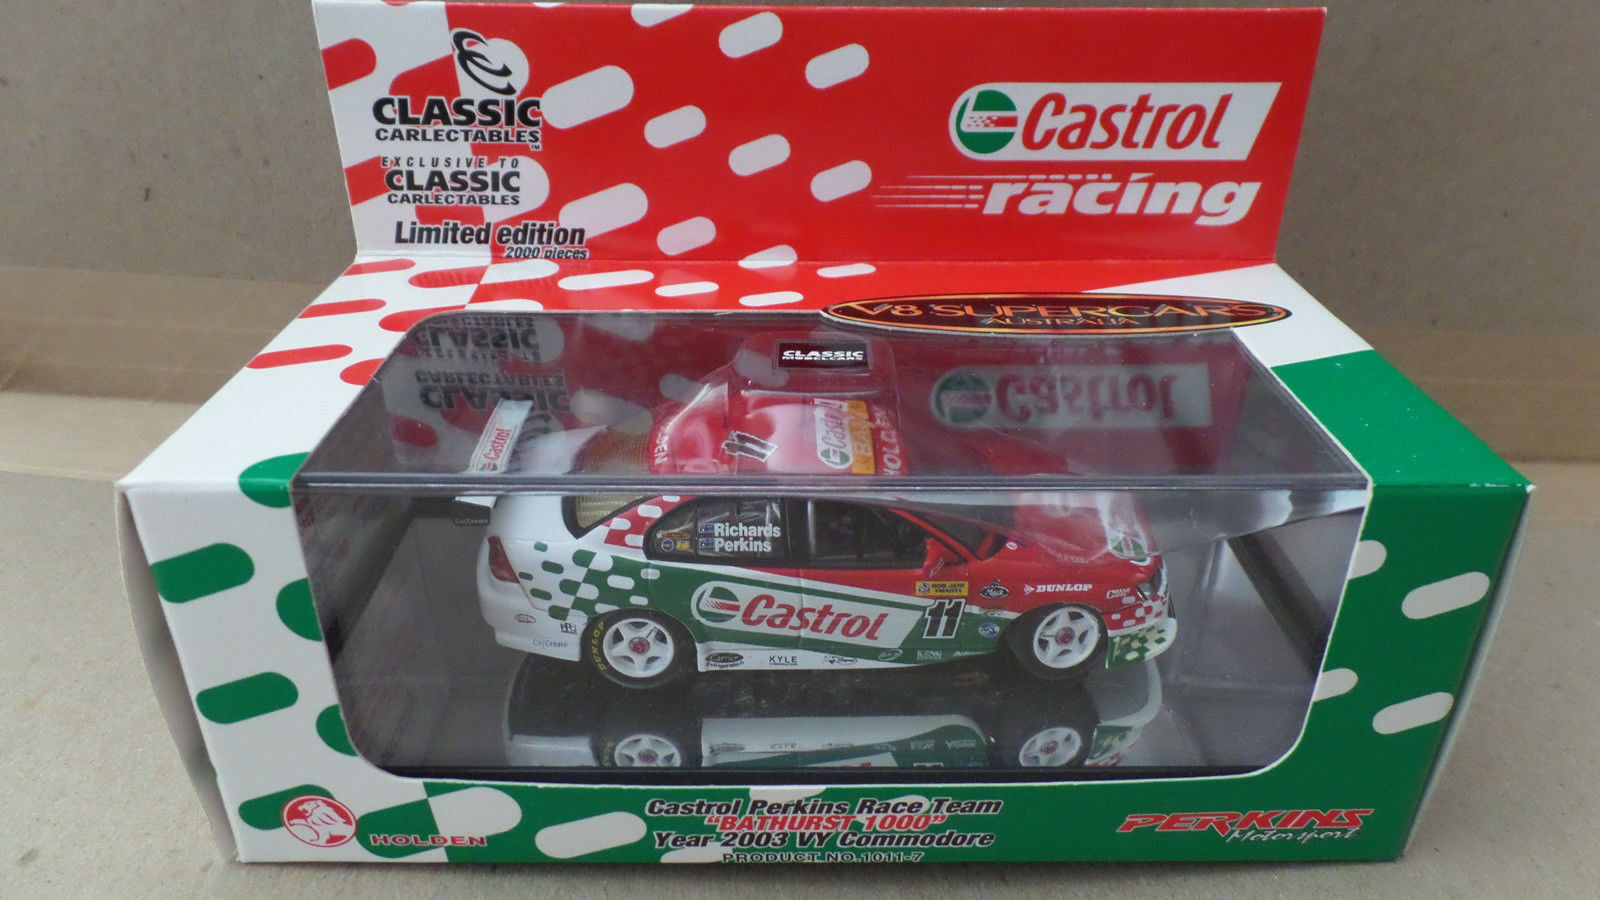 Richards Perkins Holden VY Commodore BATHURST 2003 2003 2003 - 1 43 scale 233f91